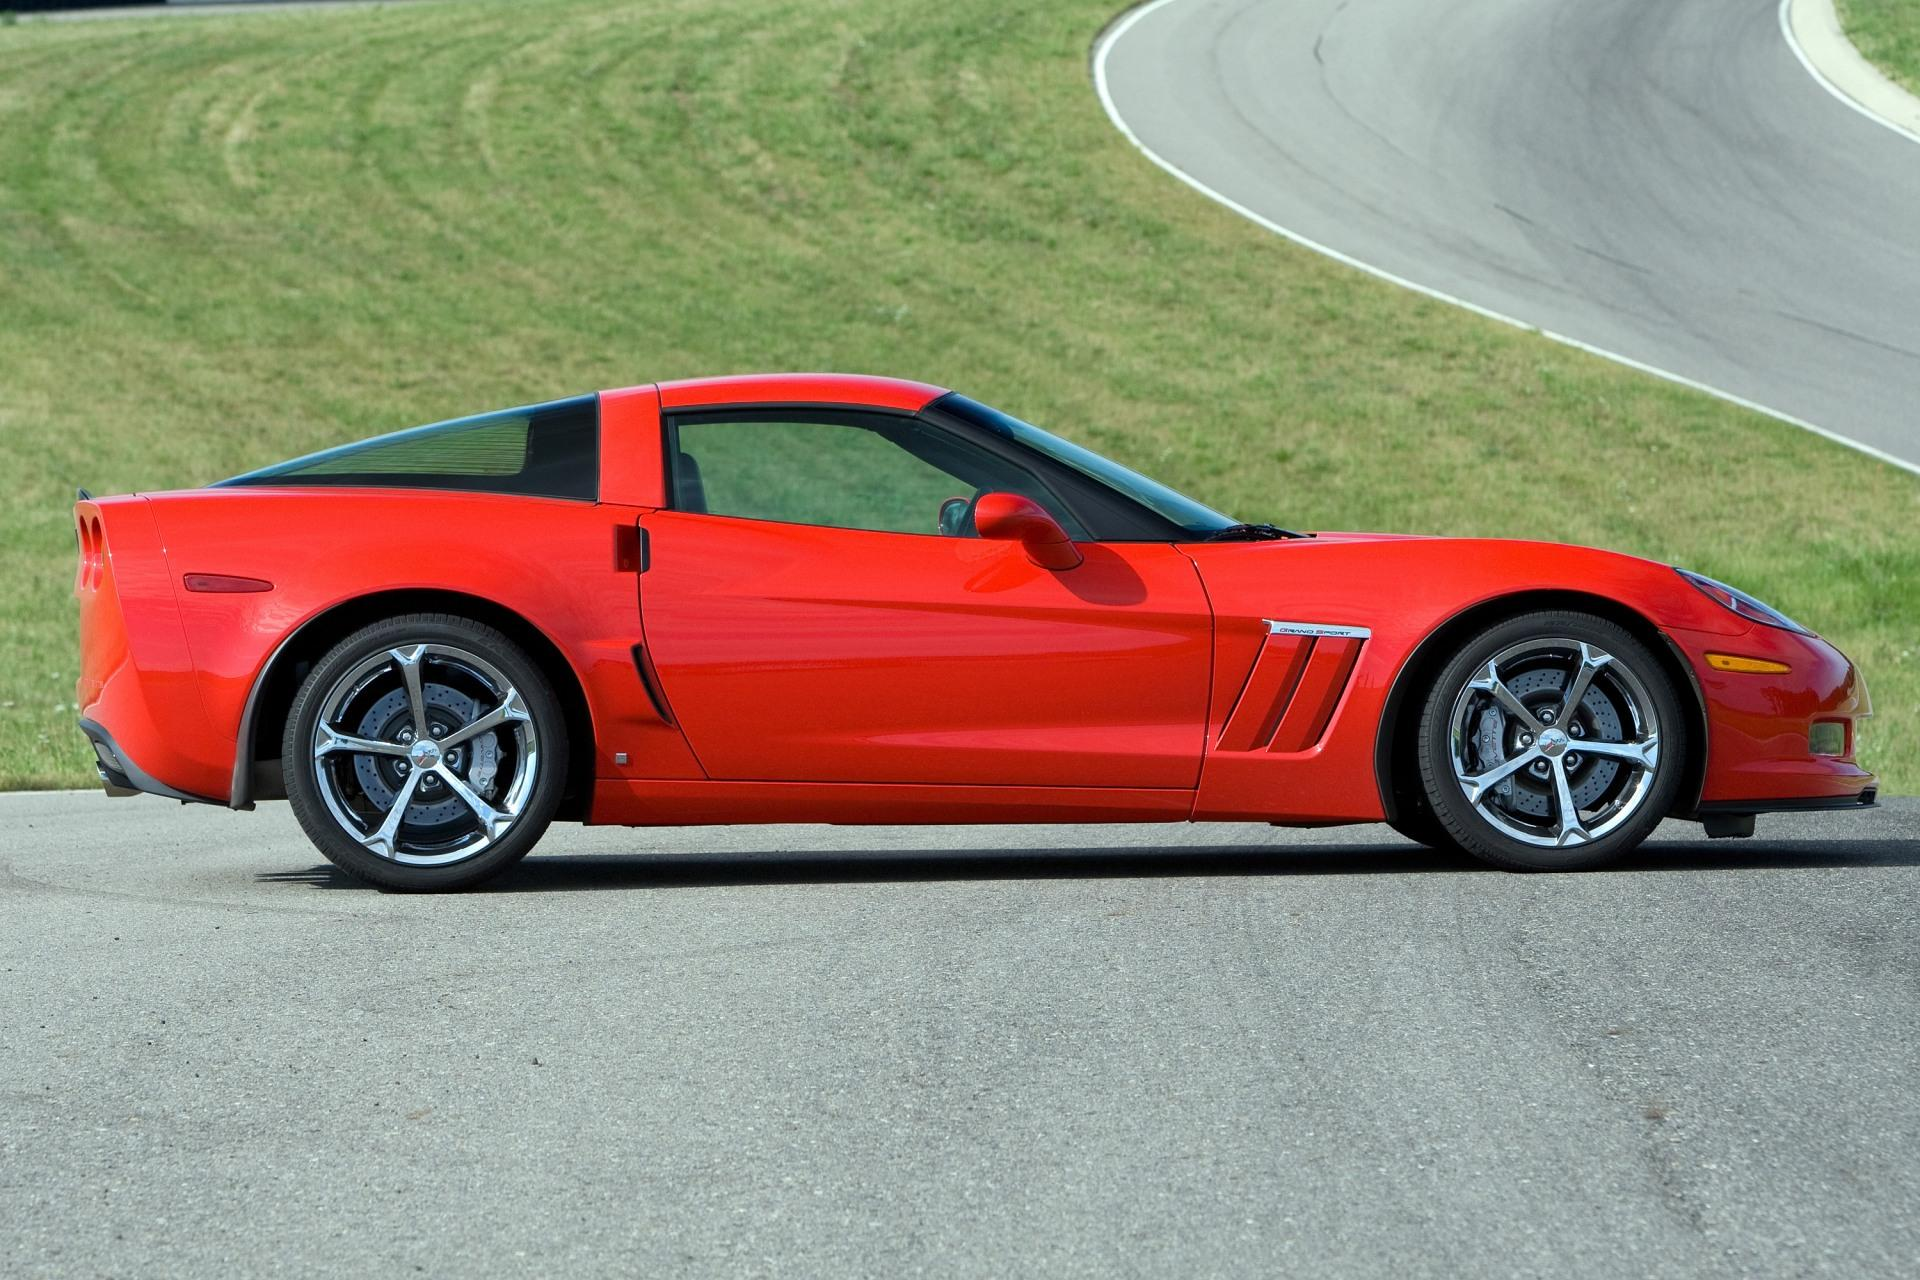 The Reviews are Coming In and the 2017 Corvette Grand Sport is the